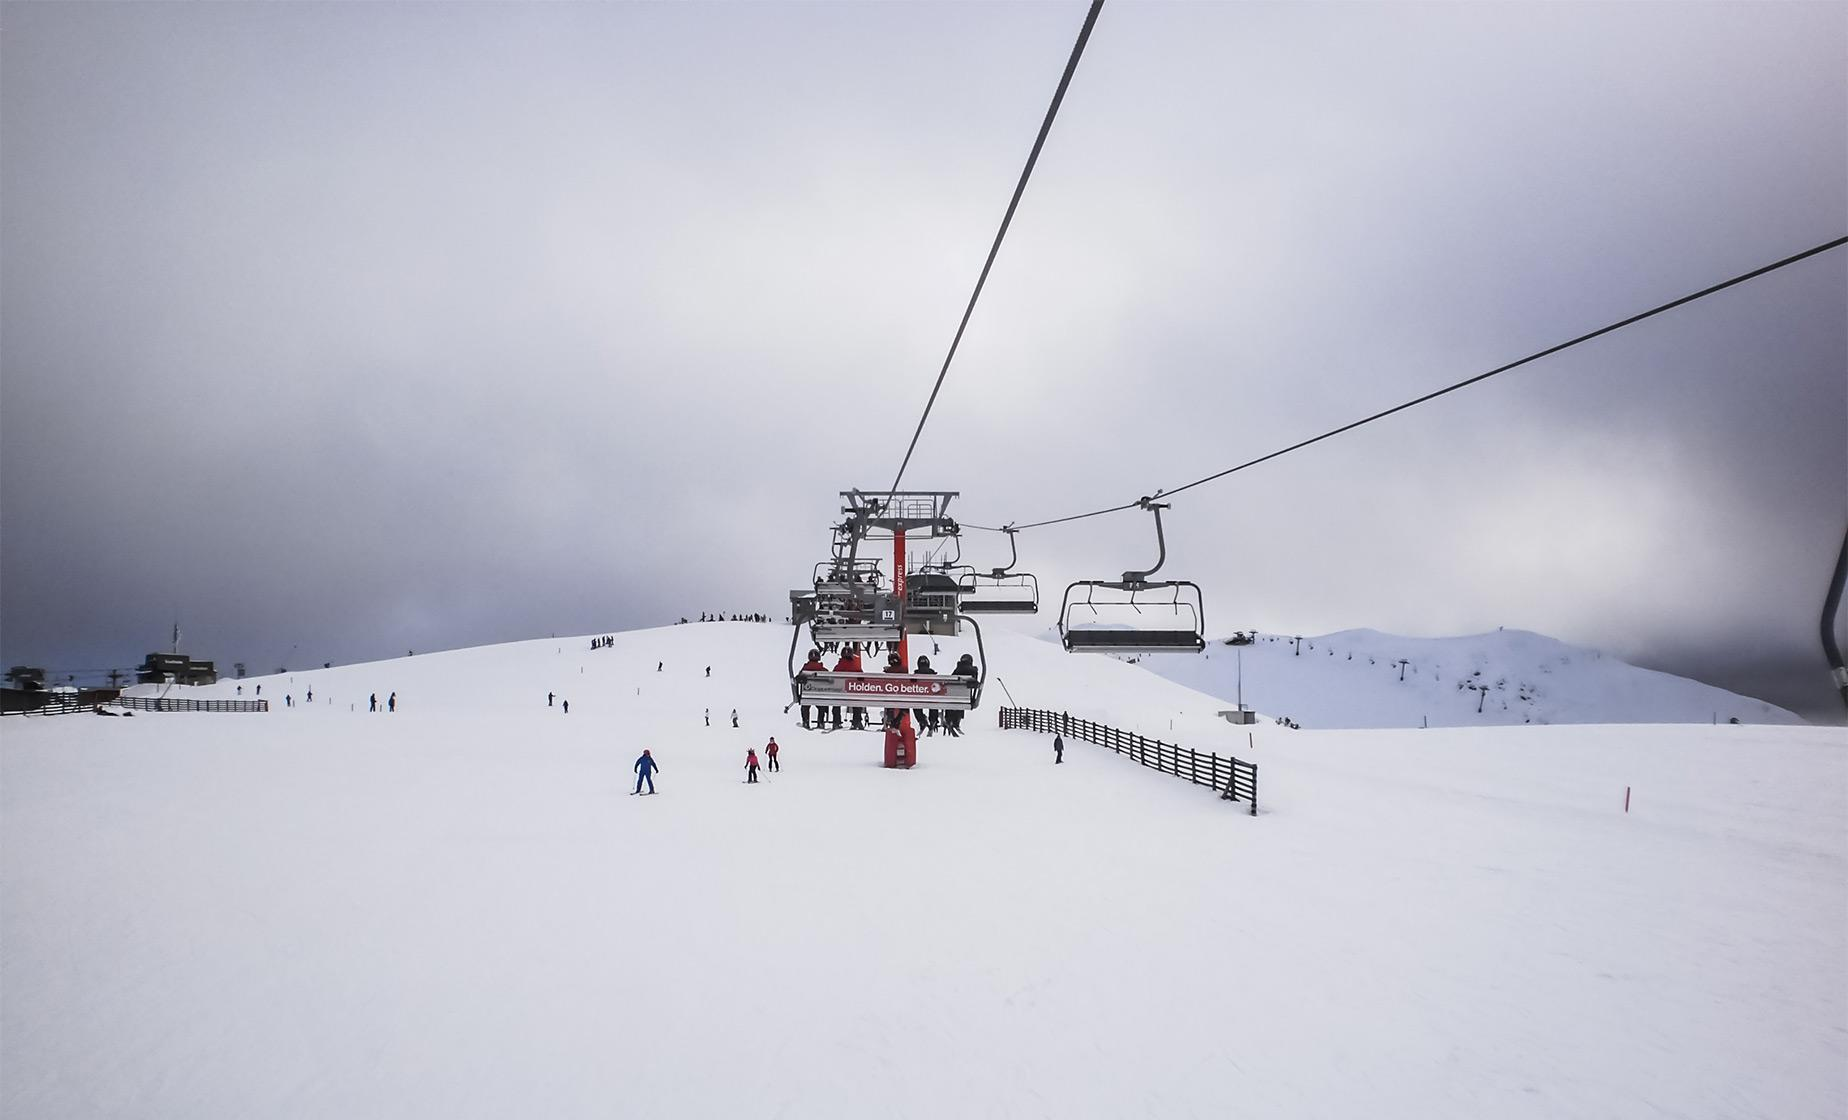 Mount Buller Ski Tour from Melbourne (Yea, Bonnie Doon, Mansfield)